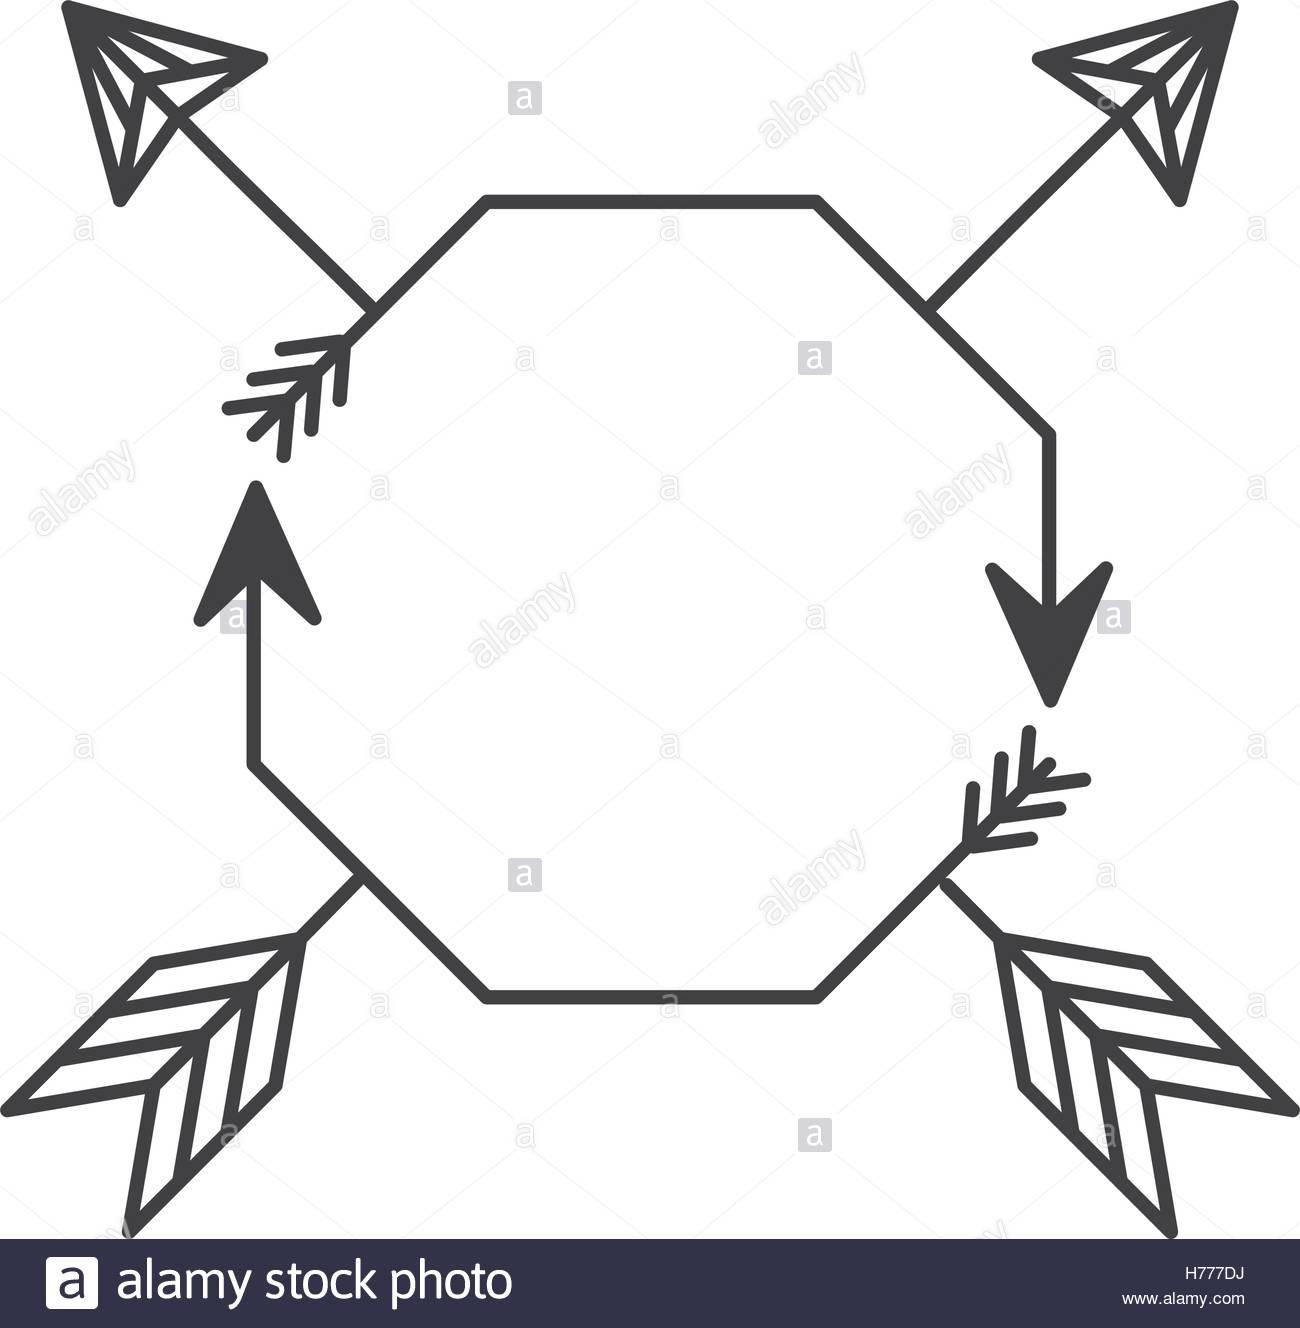 1300x1328 Silhouette With Octagon Shape And Arrows Vector Illustration Stock